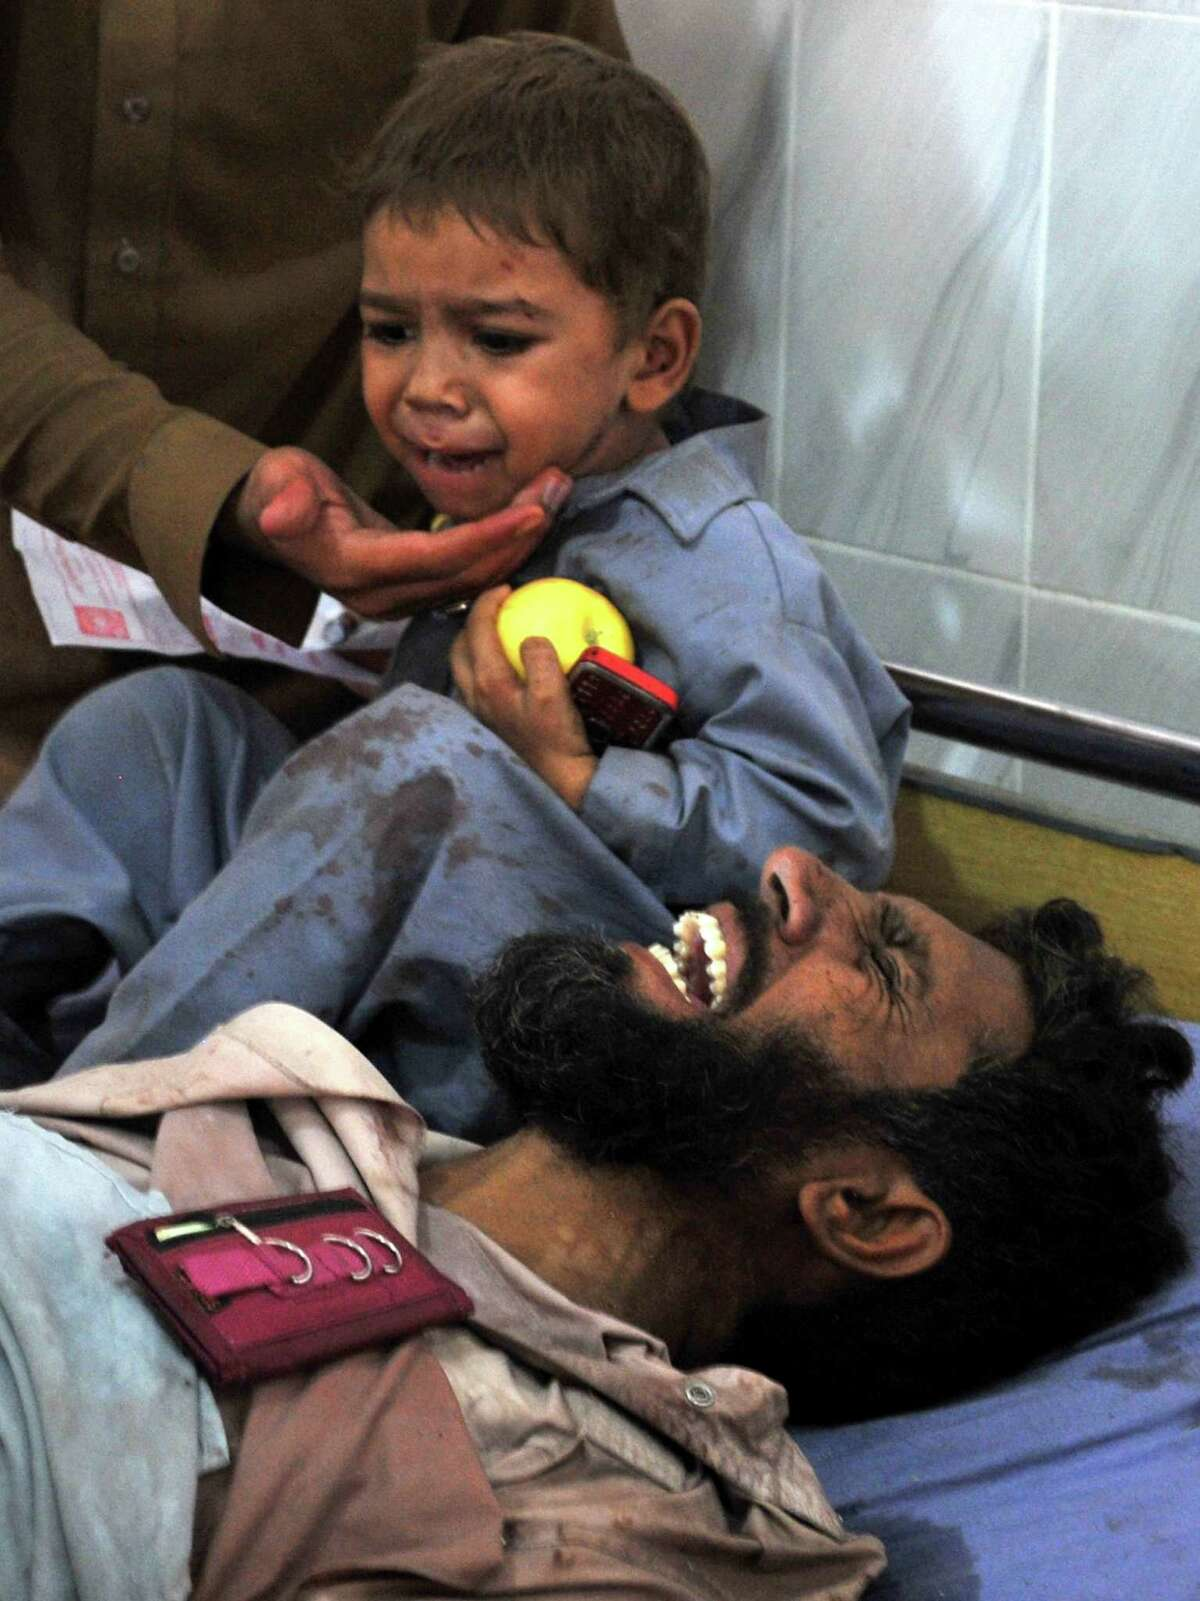 TOPSHOTS A Pakistani child cries to his injured father at a hospital following a bomb explosion in Peshawar on September 19, 2012. A bomb apparently targeting a Pakistan air force vehicle ripped through a van in the country's northwestern city of Peshawar on September 19, killing nine people, officials said. AFP PHOTO / HASHAM AHMEDHASHAM AHMED/AFP/GettyImages